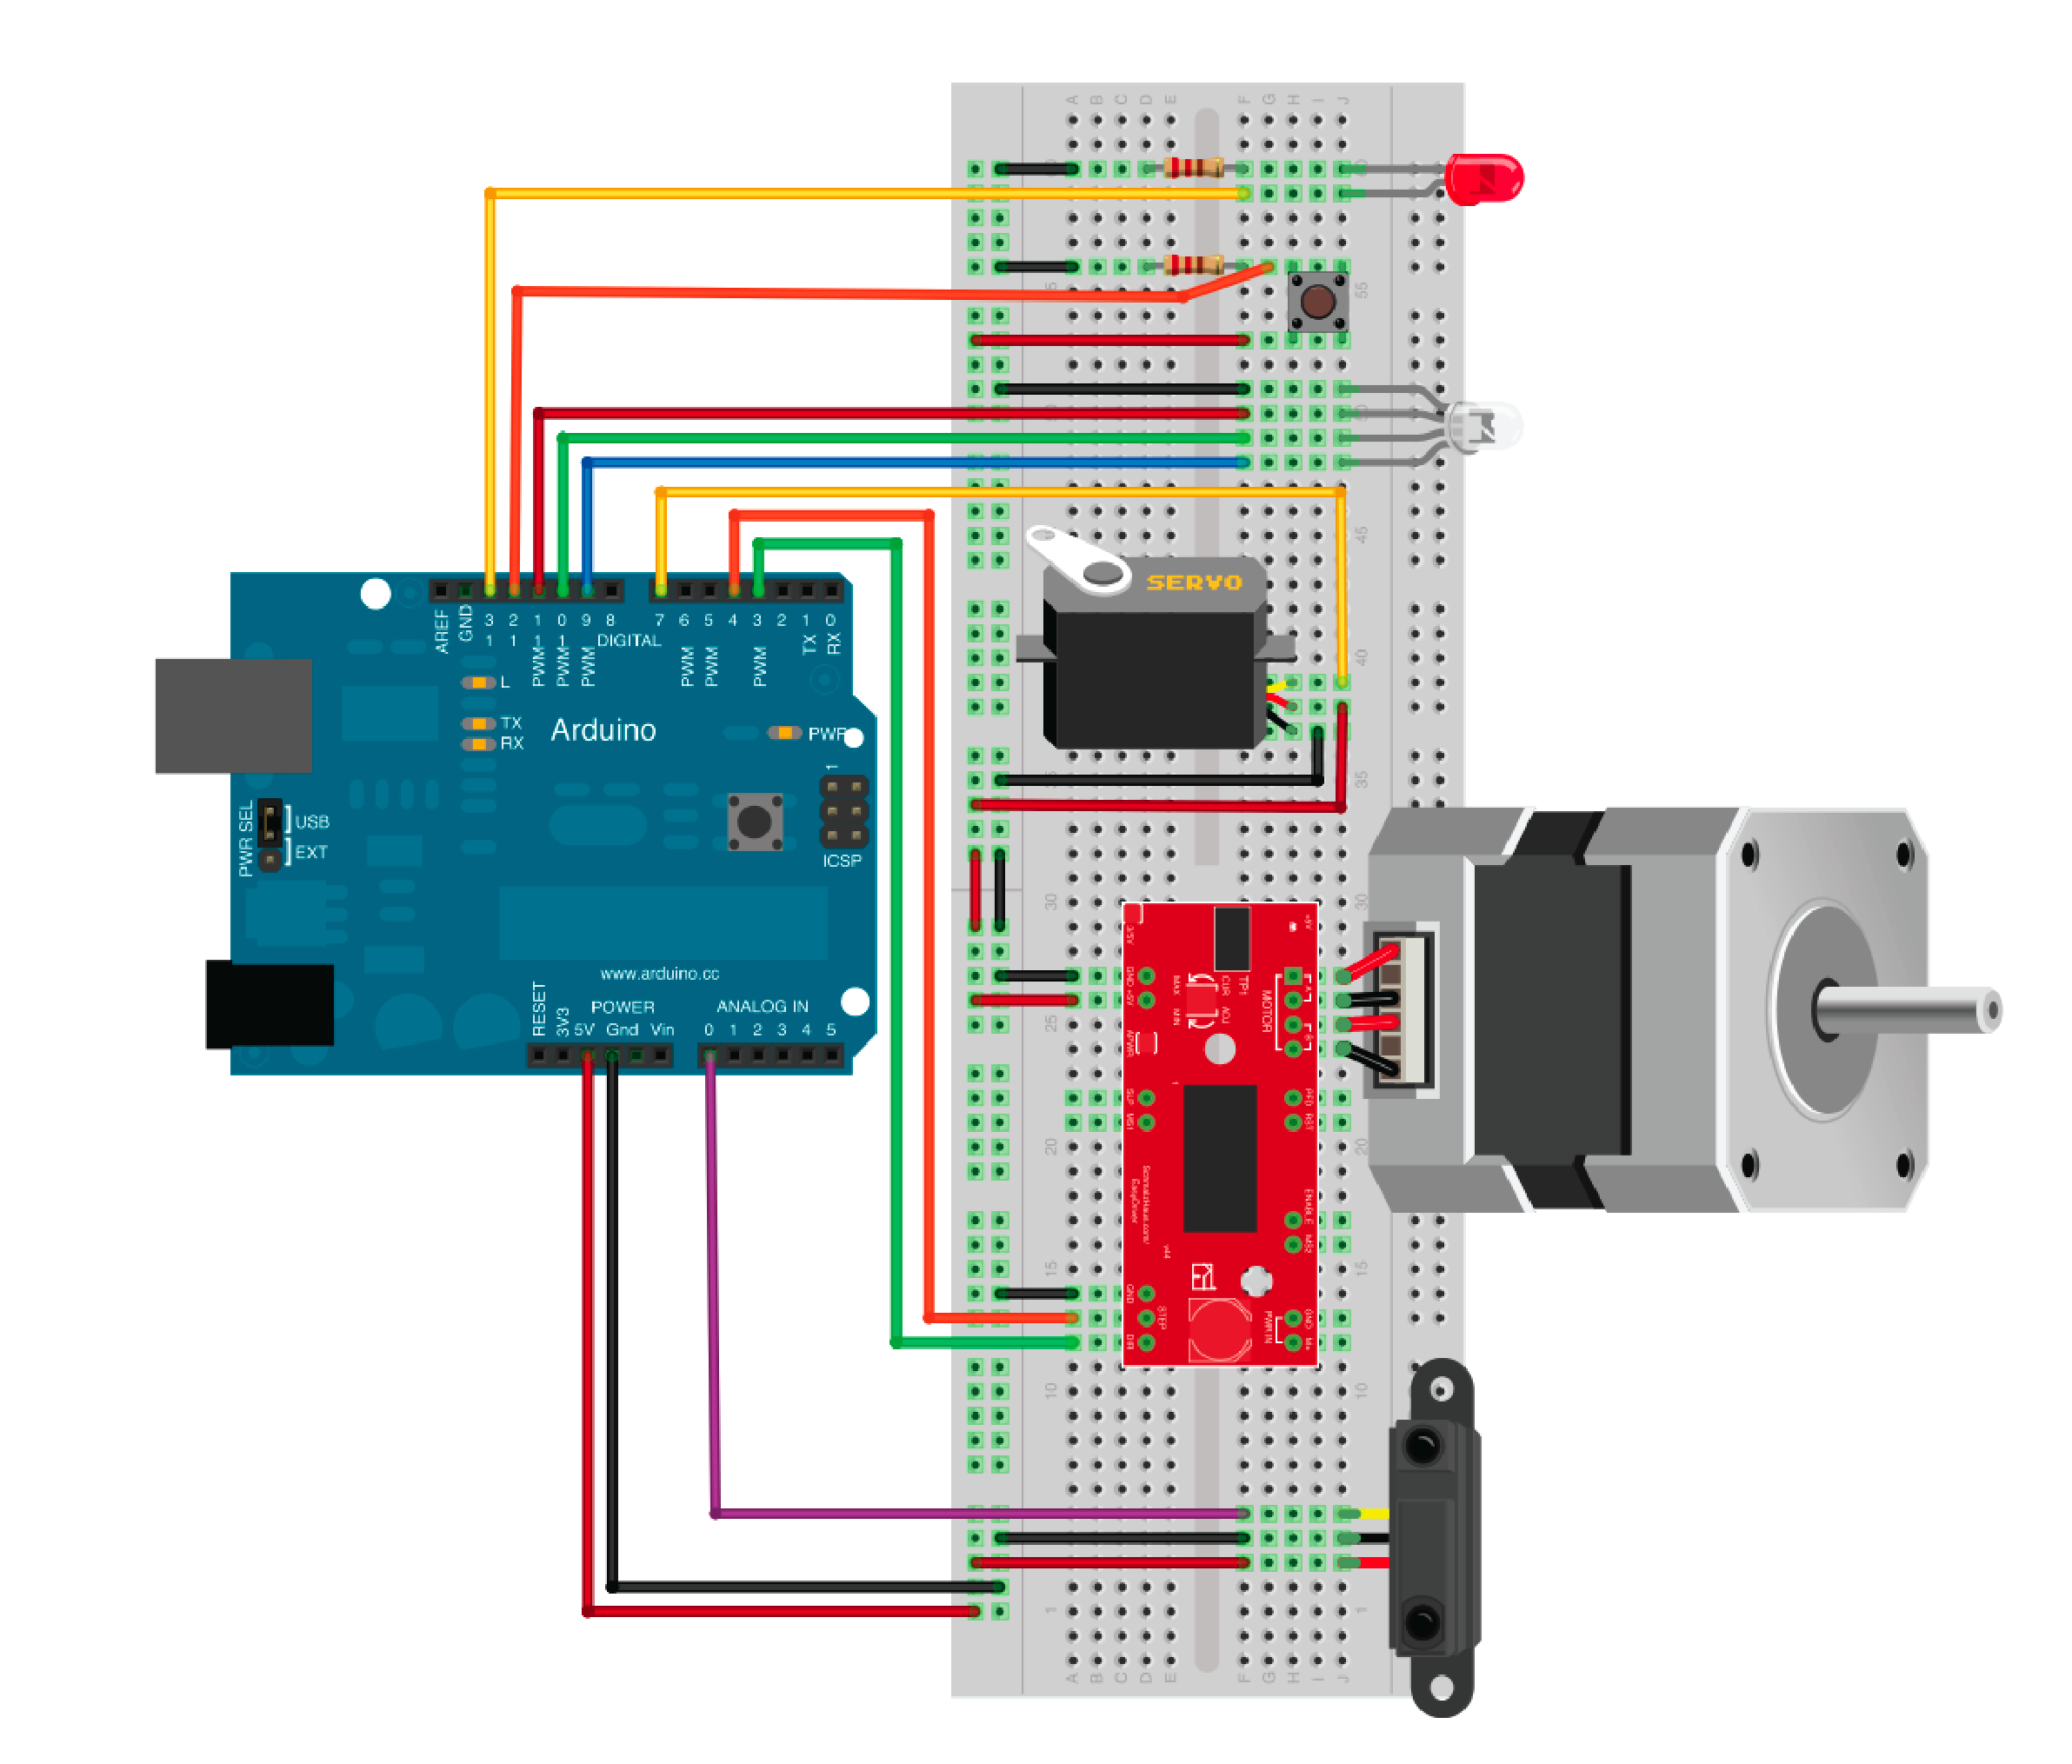 Arduino windows 10 usb driver